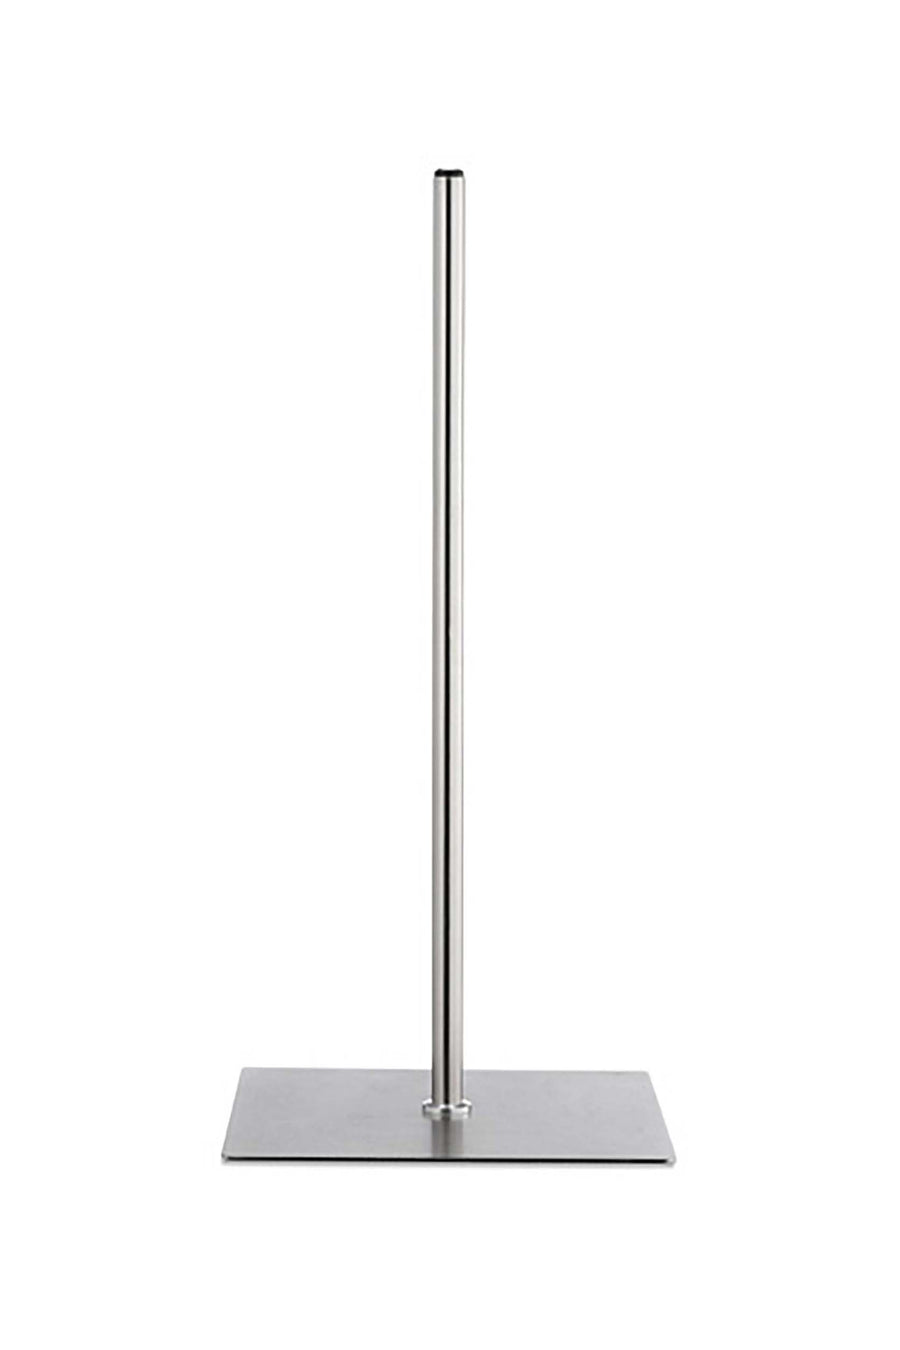 metal stand for mannequin busts and torsos with a brushed stainless steel finish